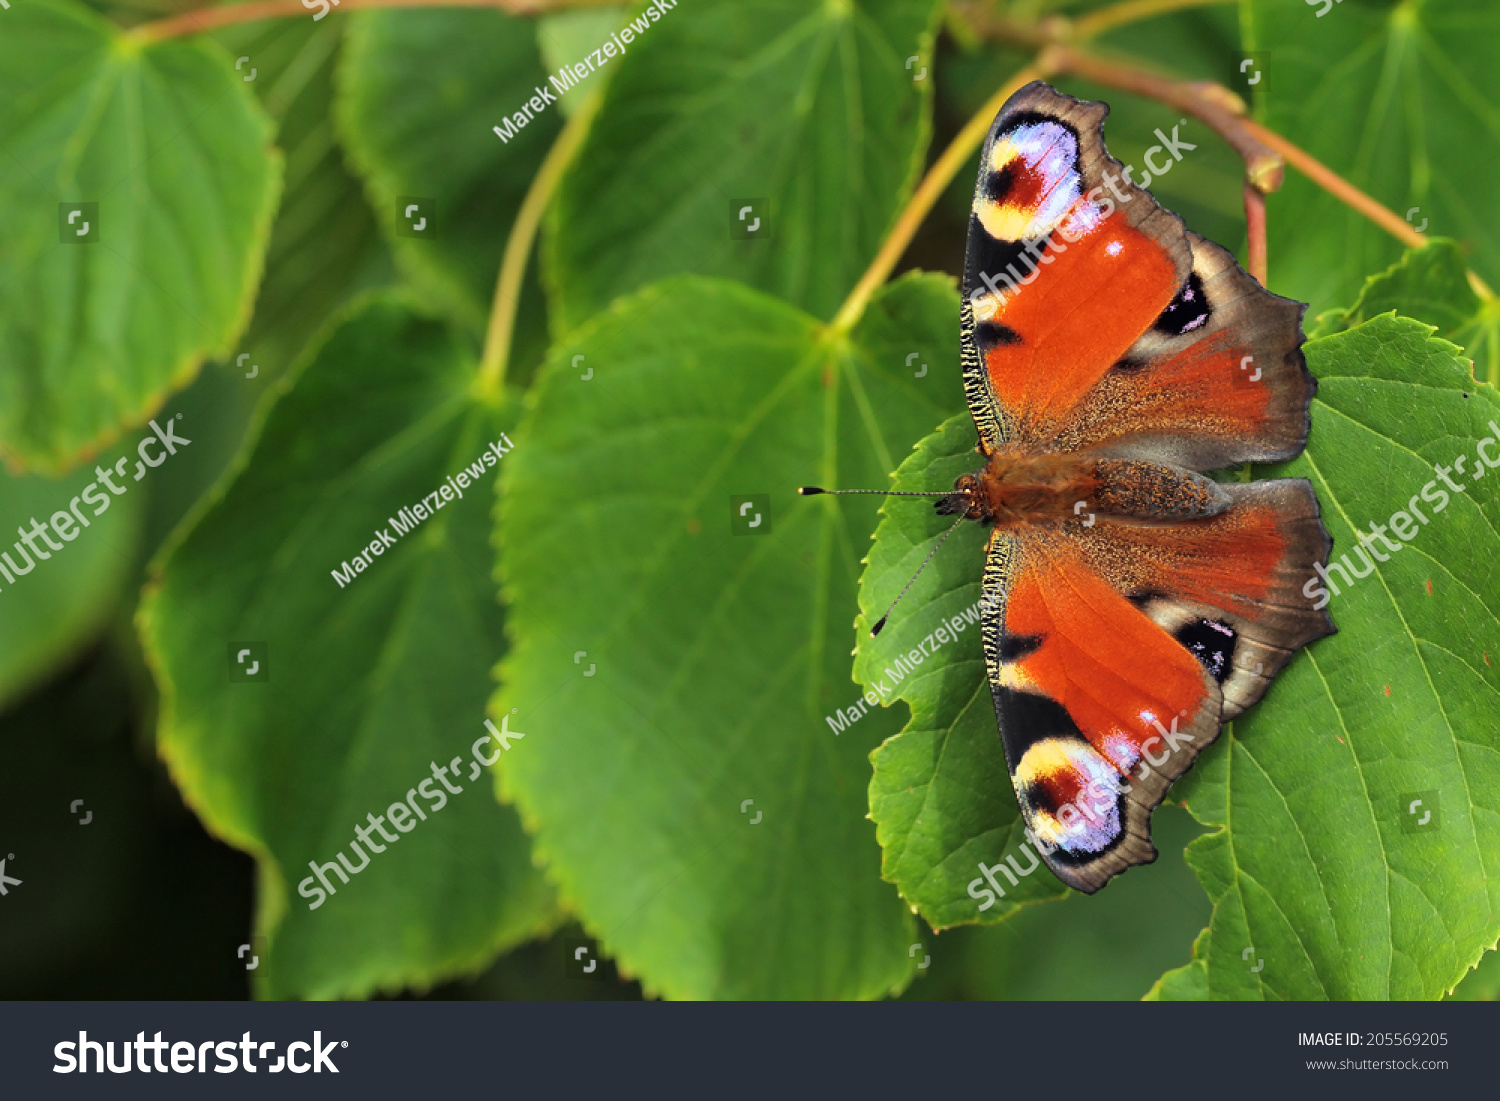 Green peacock butterfly - photo#11